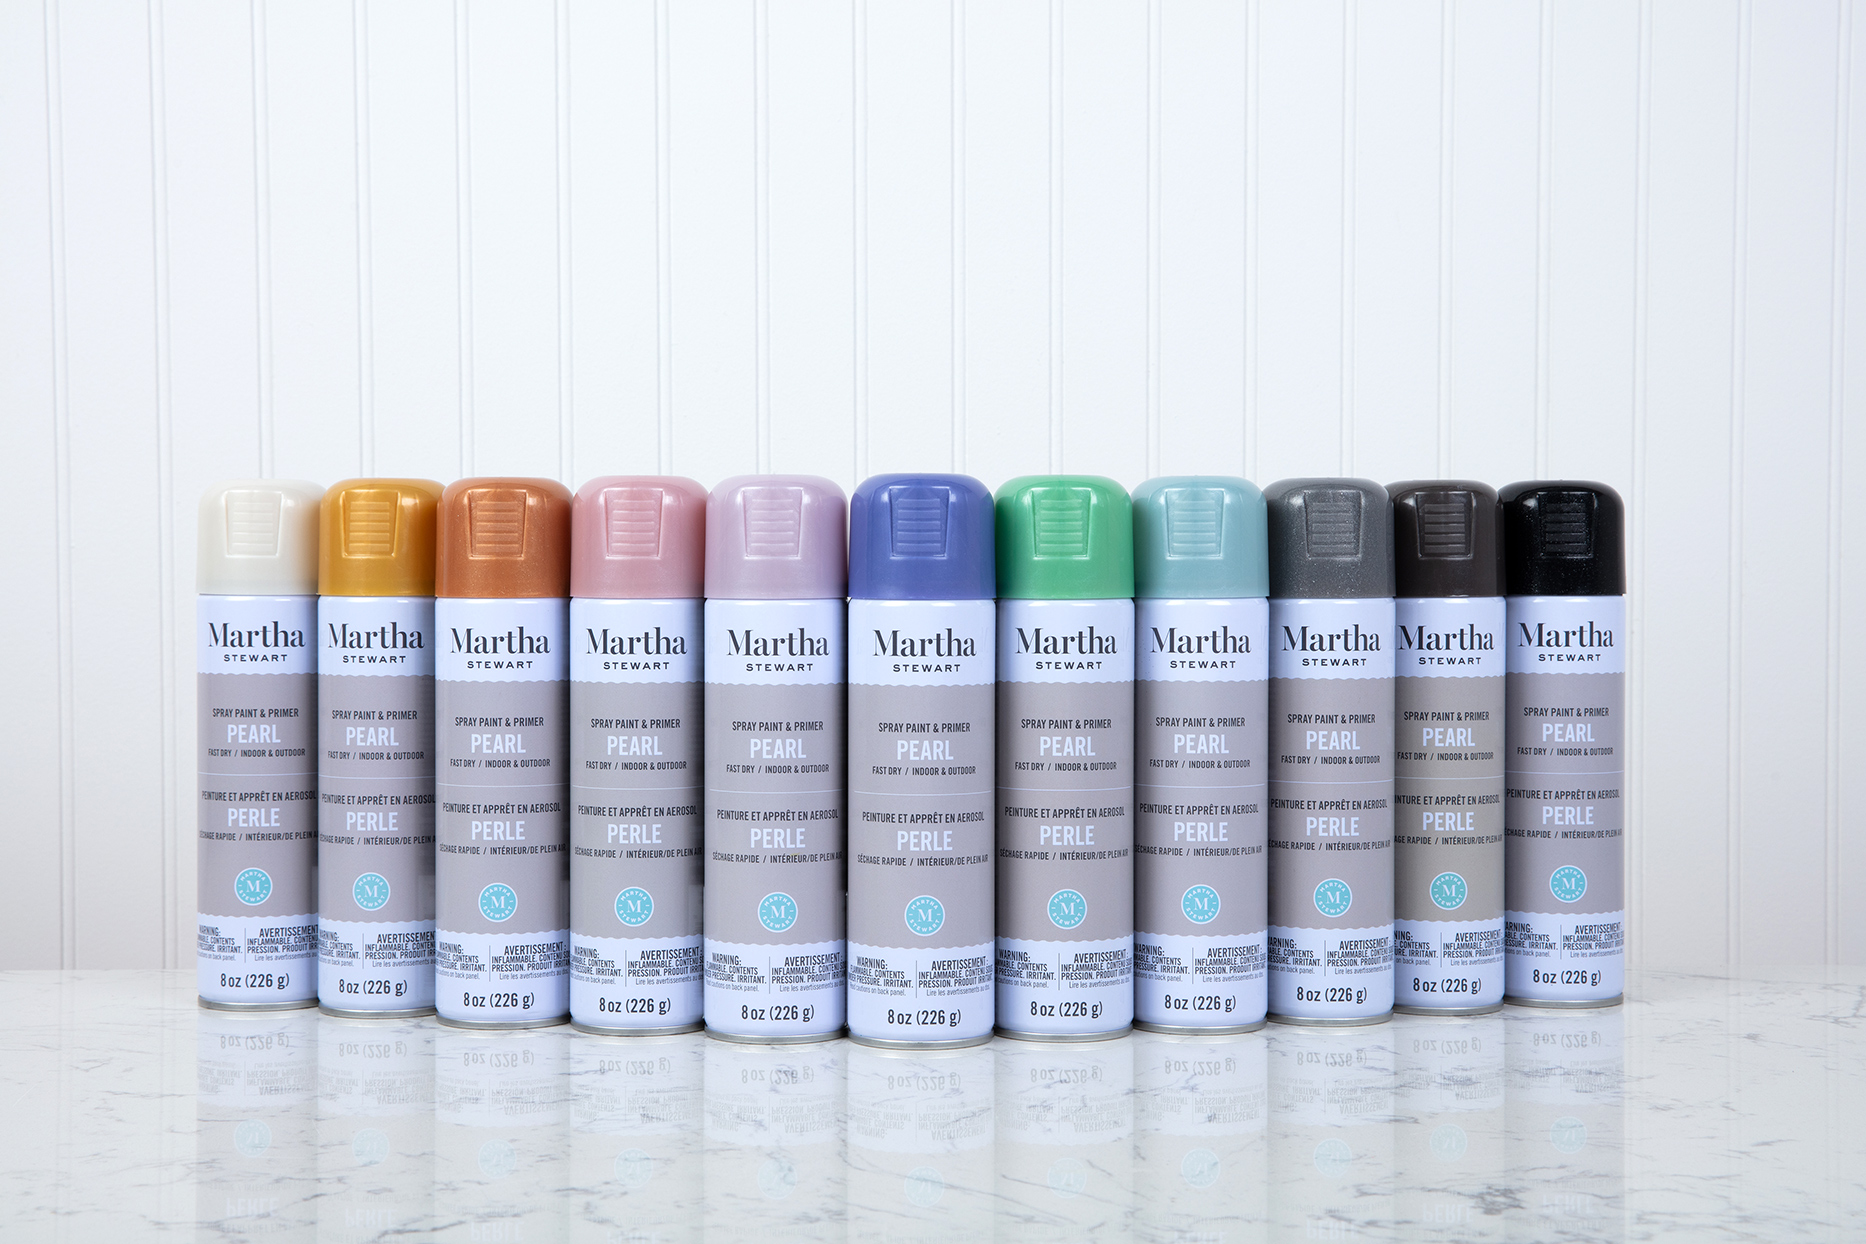 Introducing Martha Stewart's Brand-New Spray Paint Collection